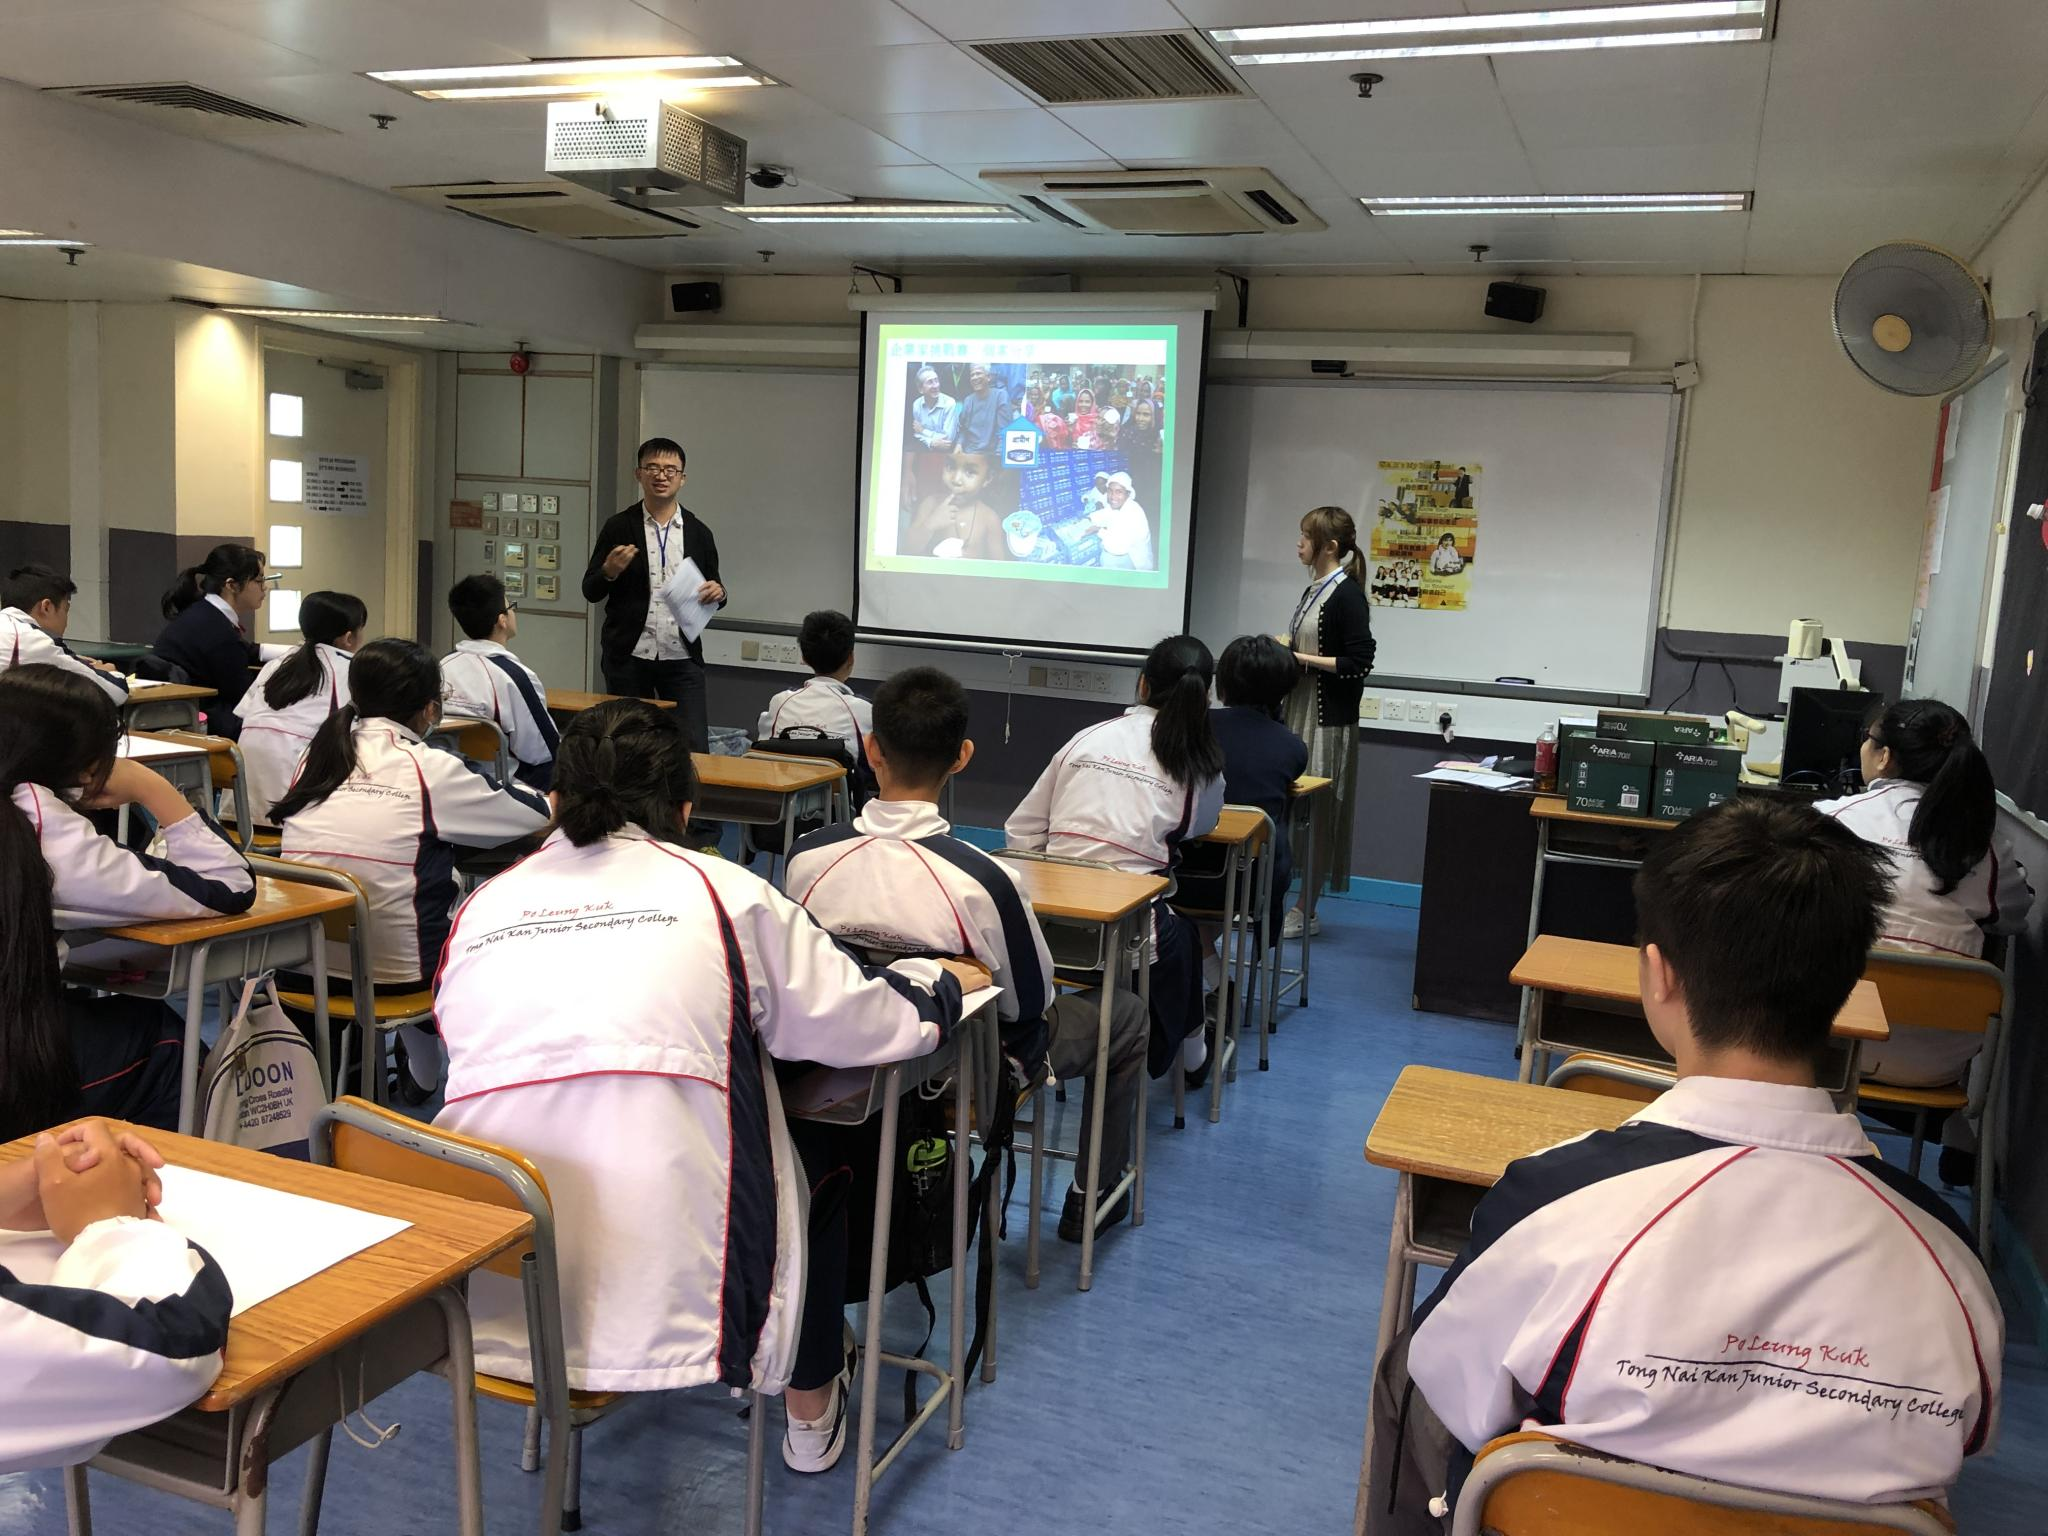 Students were learning about various marketing strategies in the classroom.